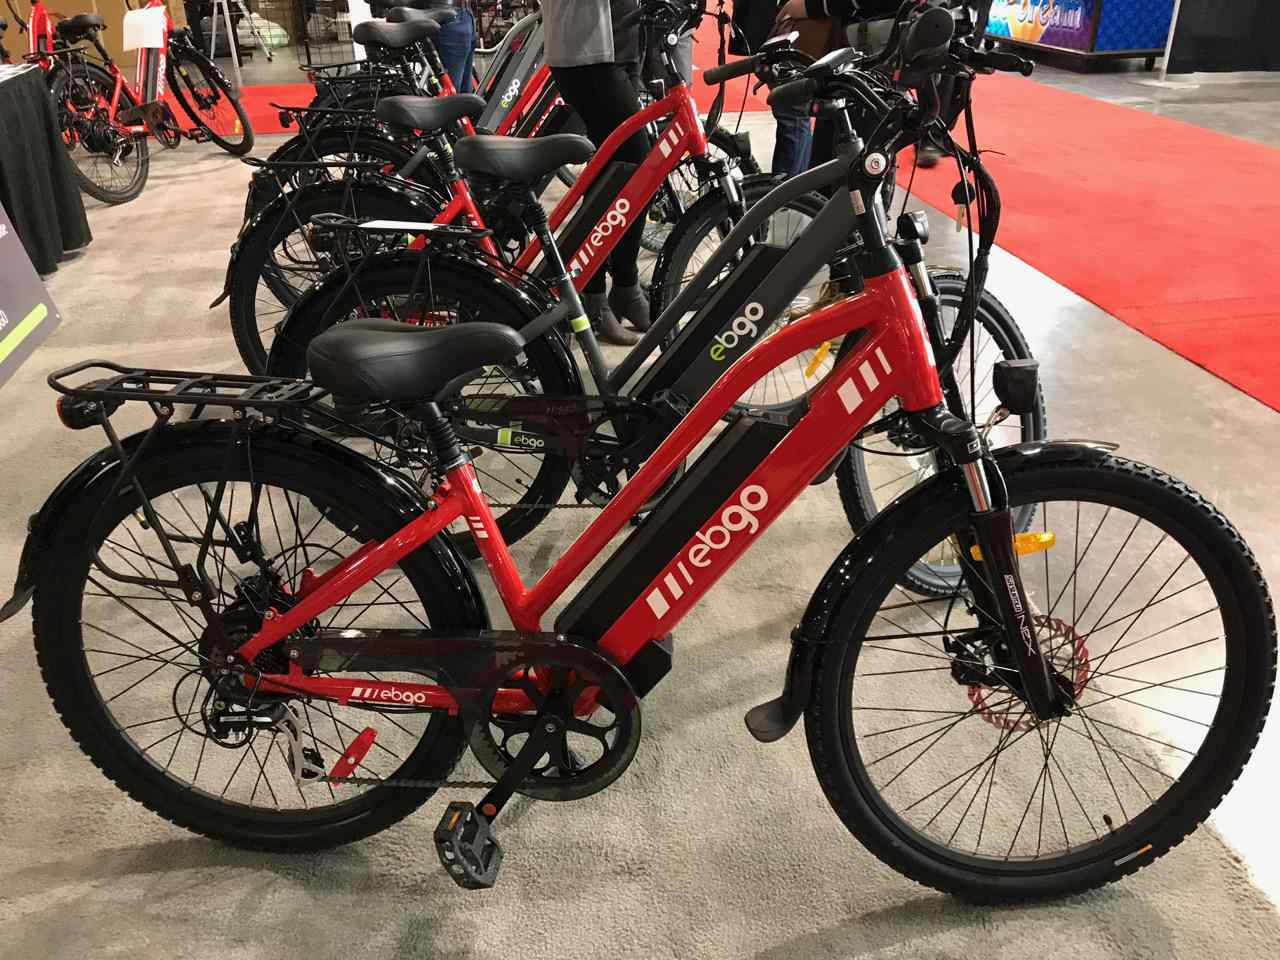 A row of red and black ebikes